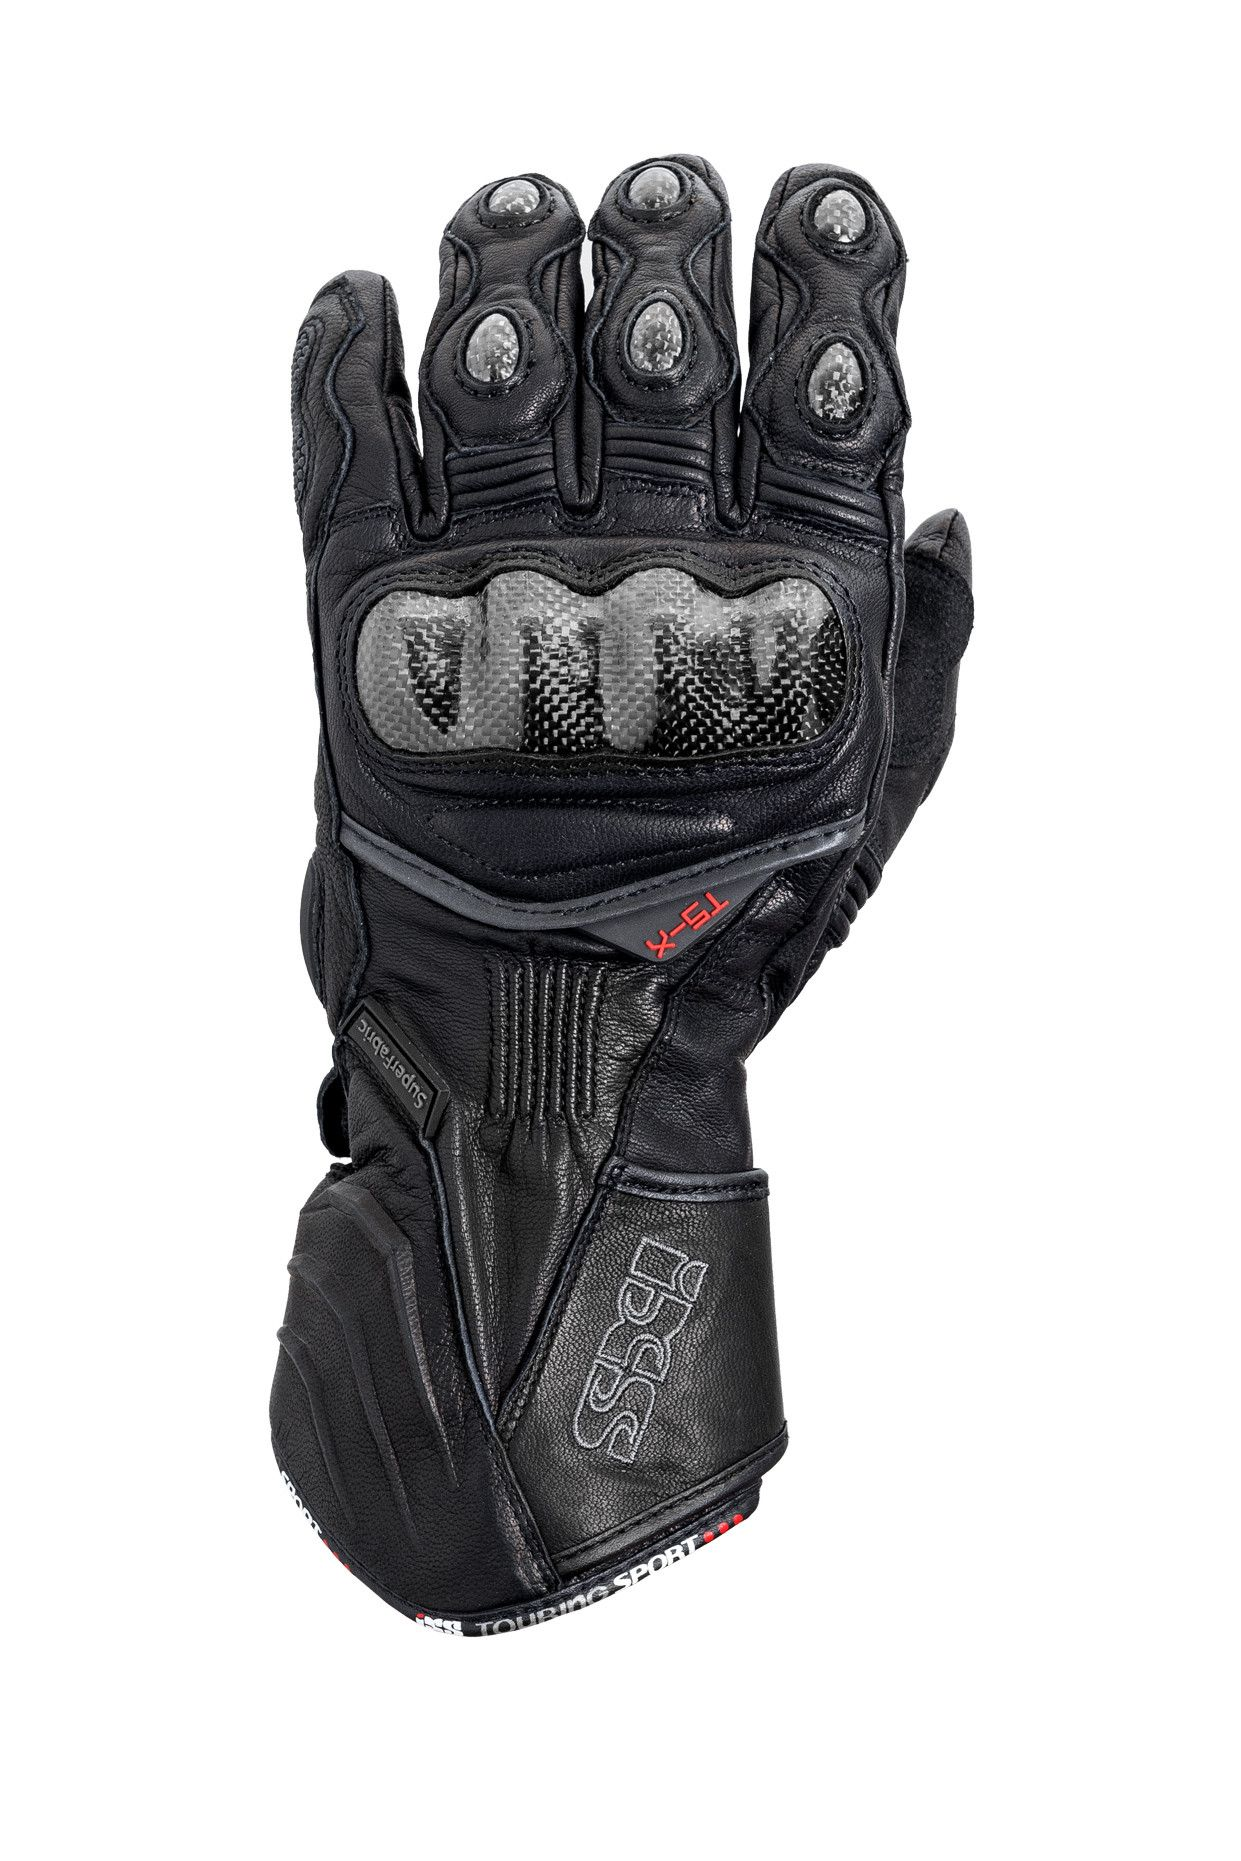 Ts x sport motorcycle glove ixs motorcycle fashion motorcycles gear